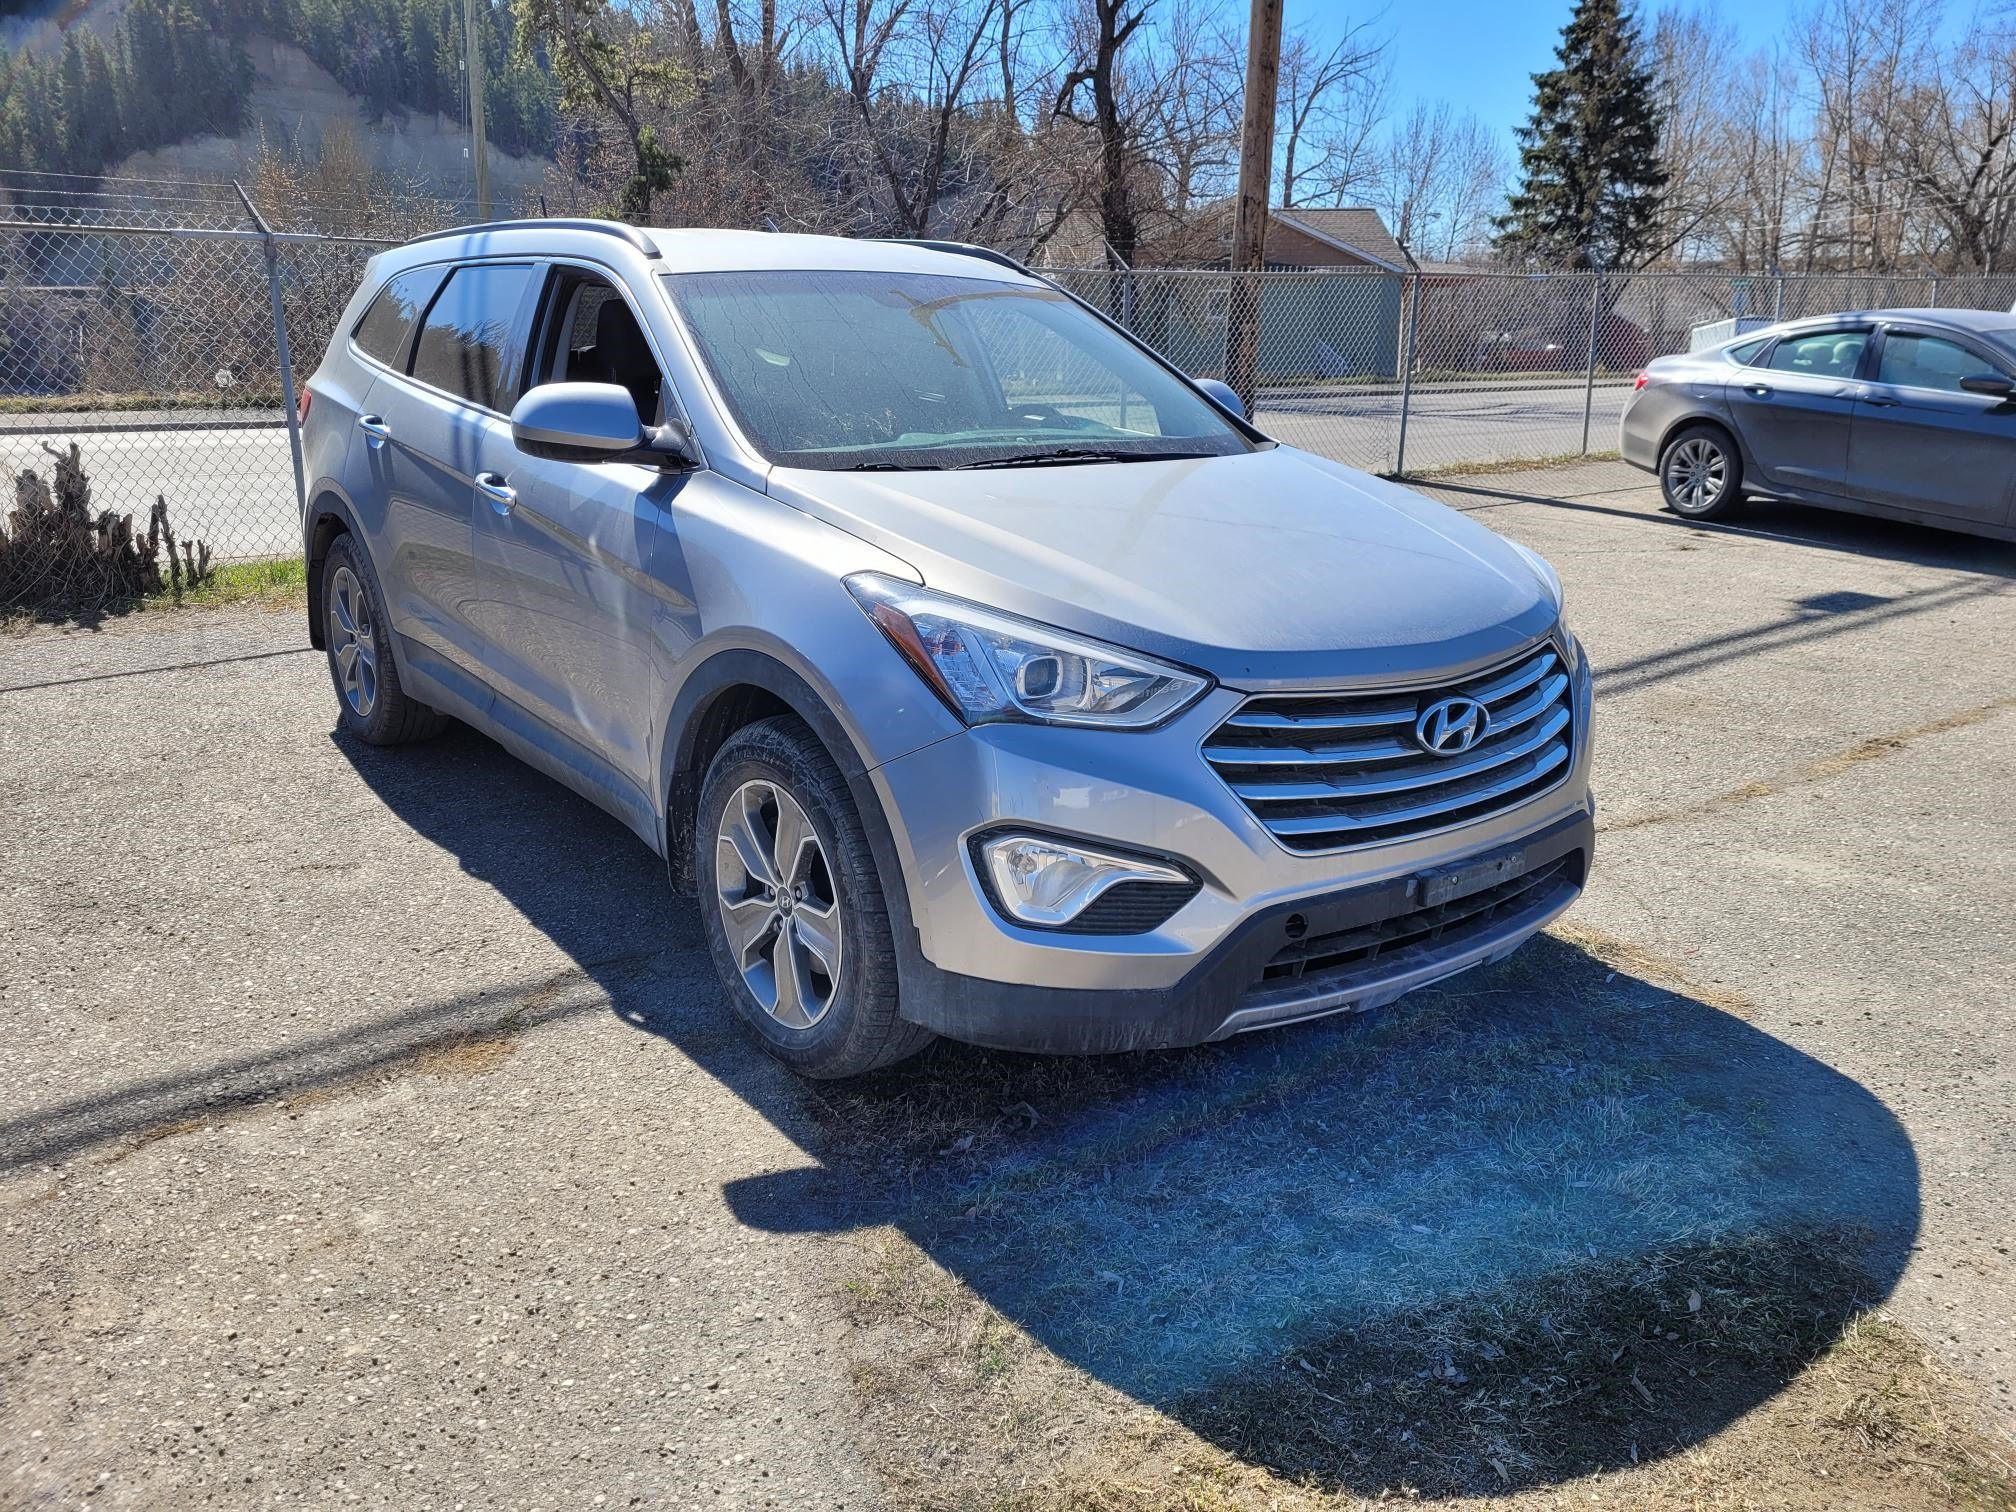 2015 Hyundai Santa Fe XL Premium  ID#B-PG-0444 Located in Prince George